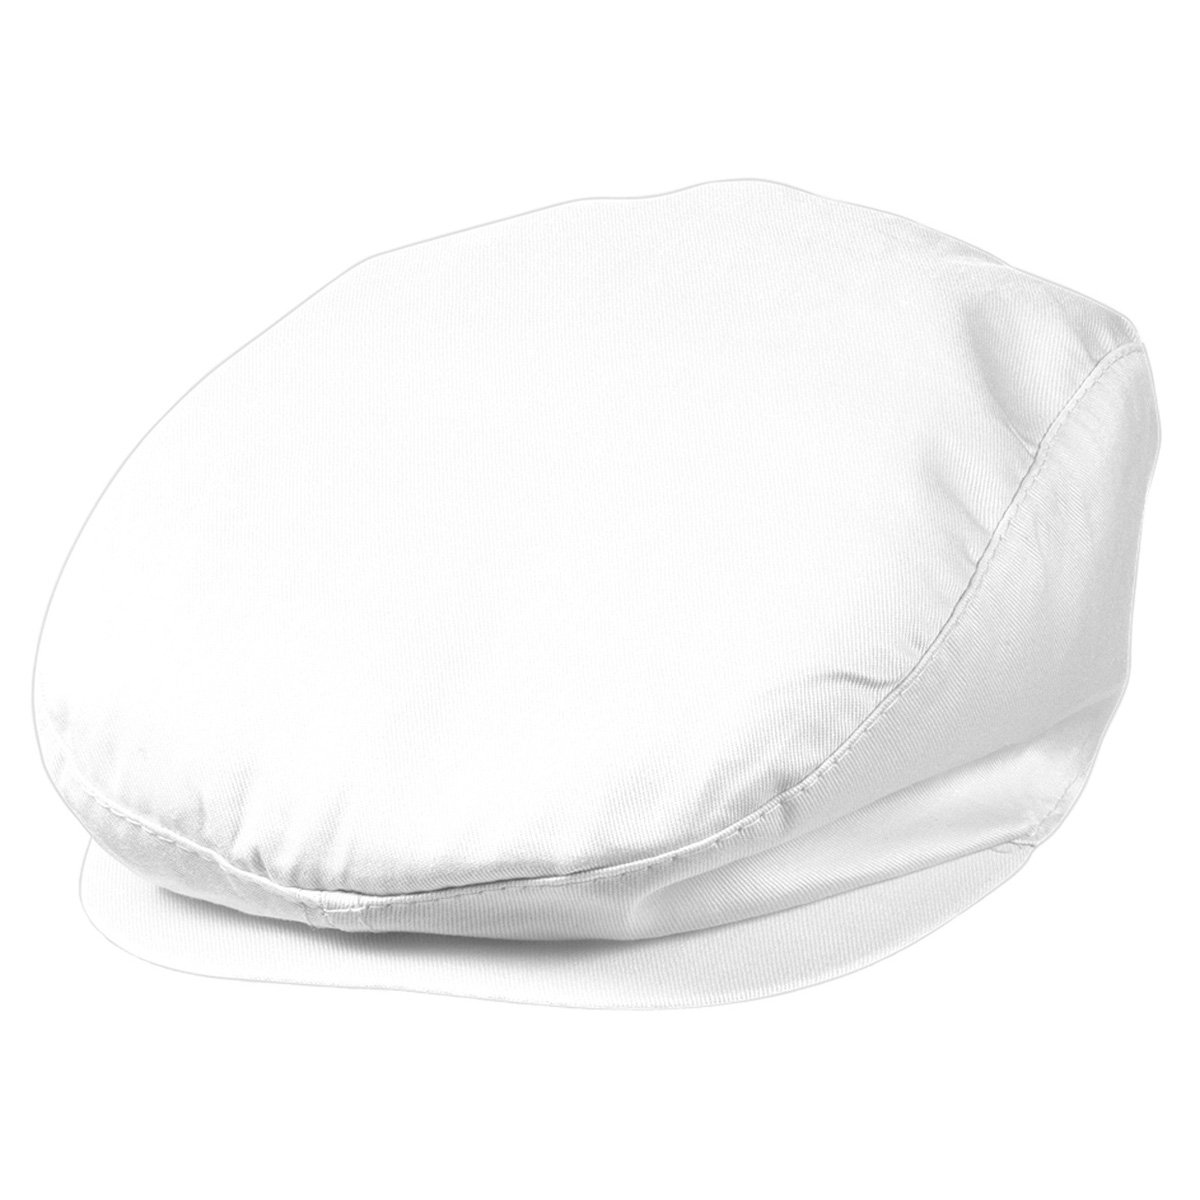 Casquette plate - MB007 - blanc